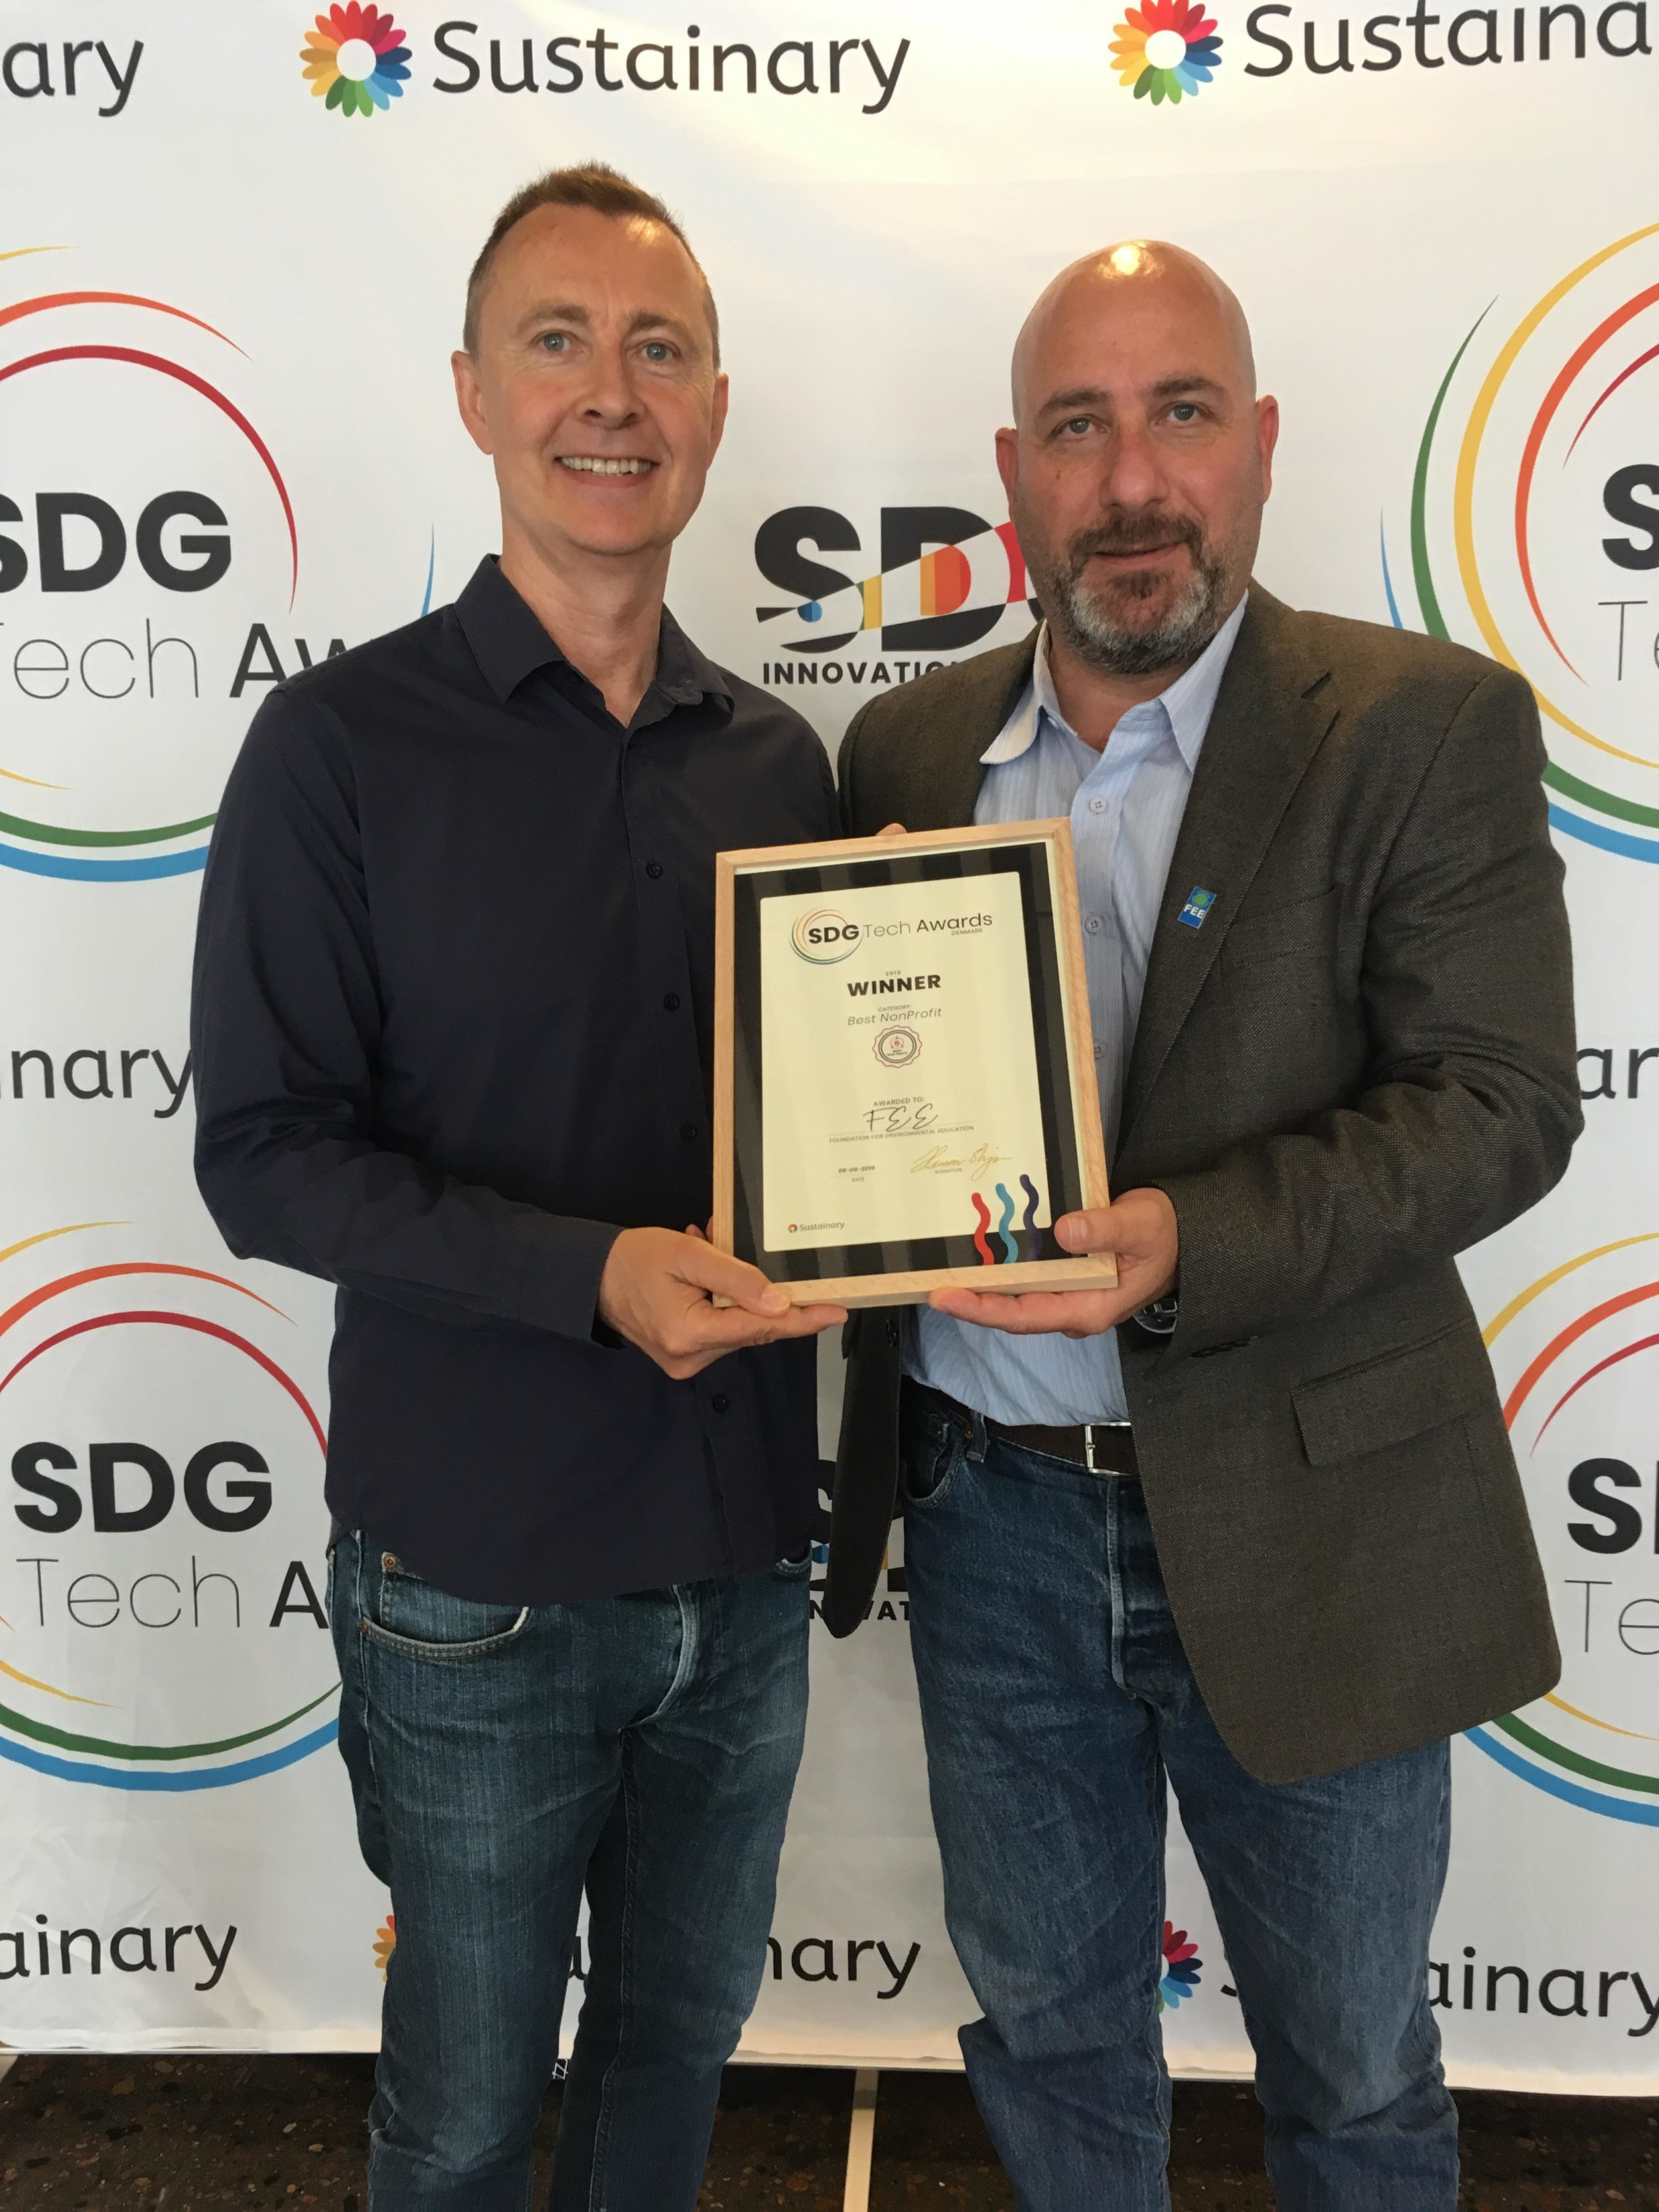 FEE wins Best Non-Profit at the SDG Tech Awards